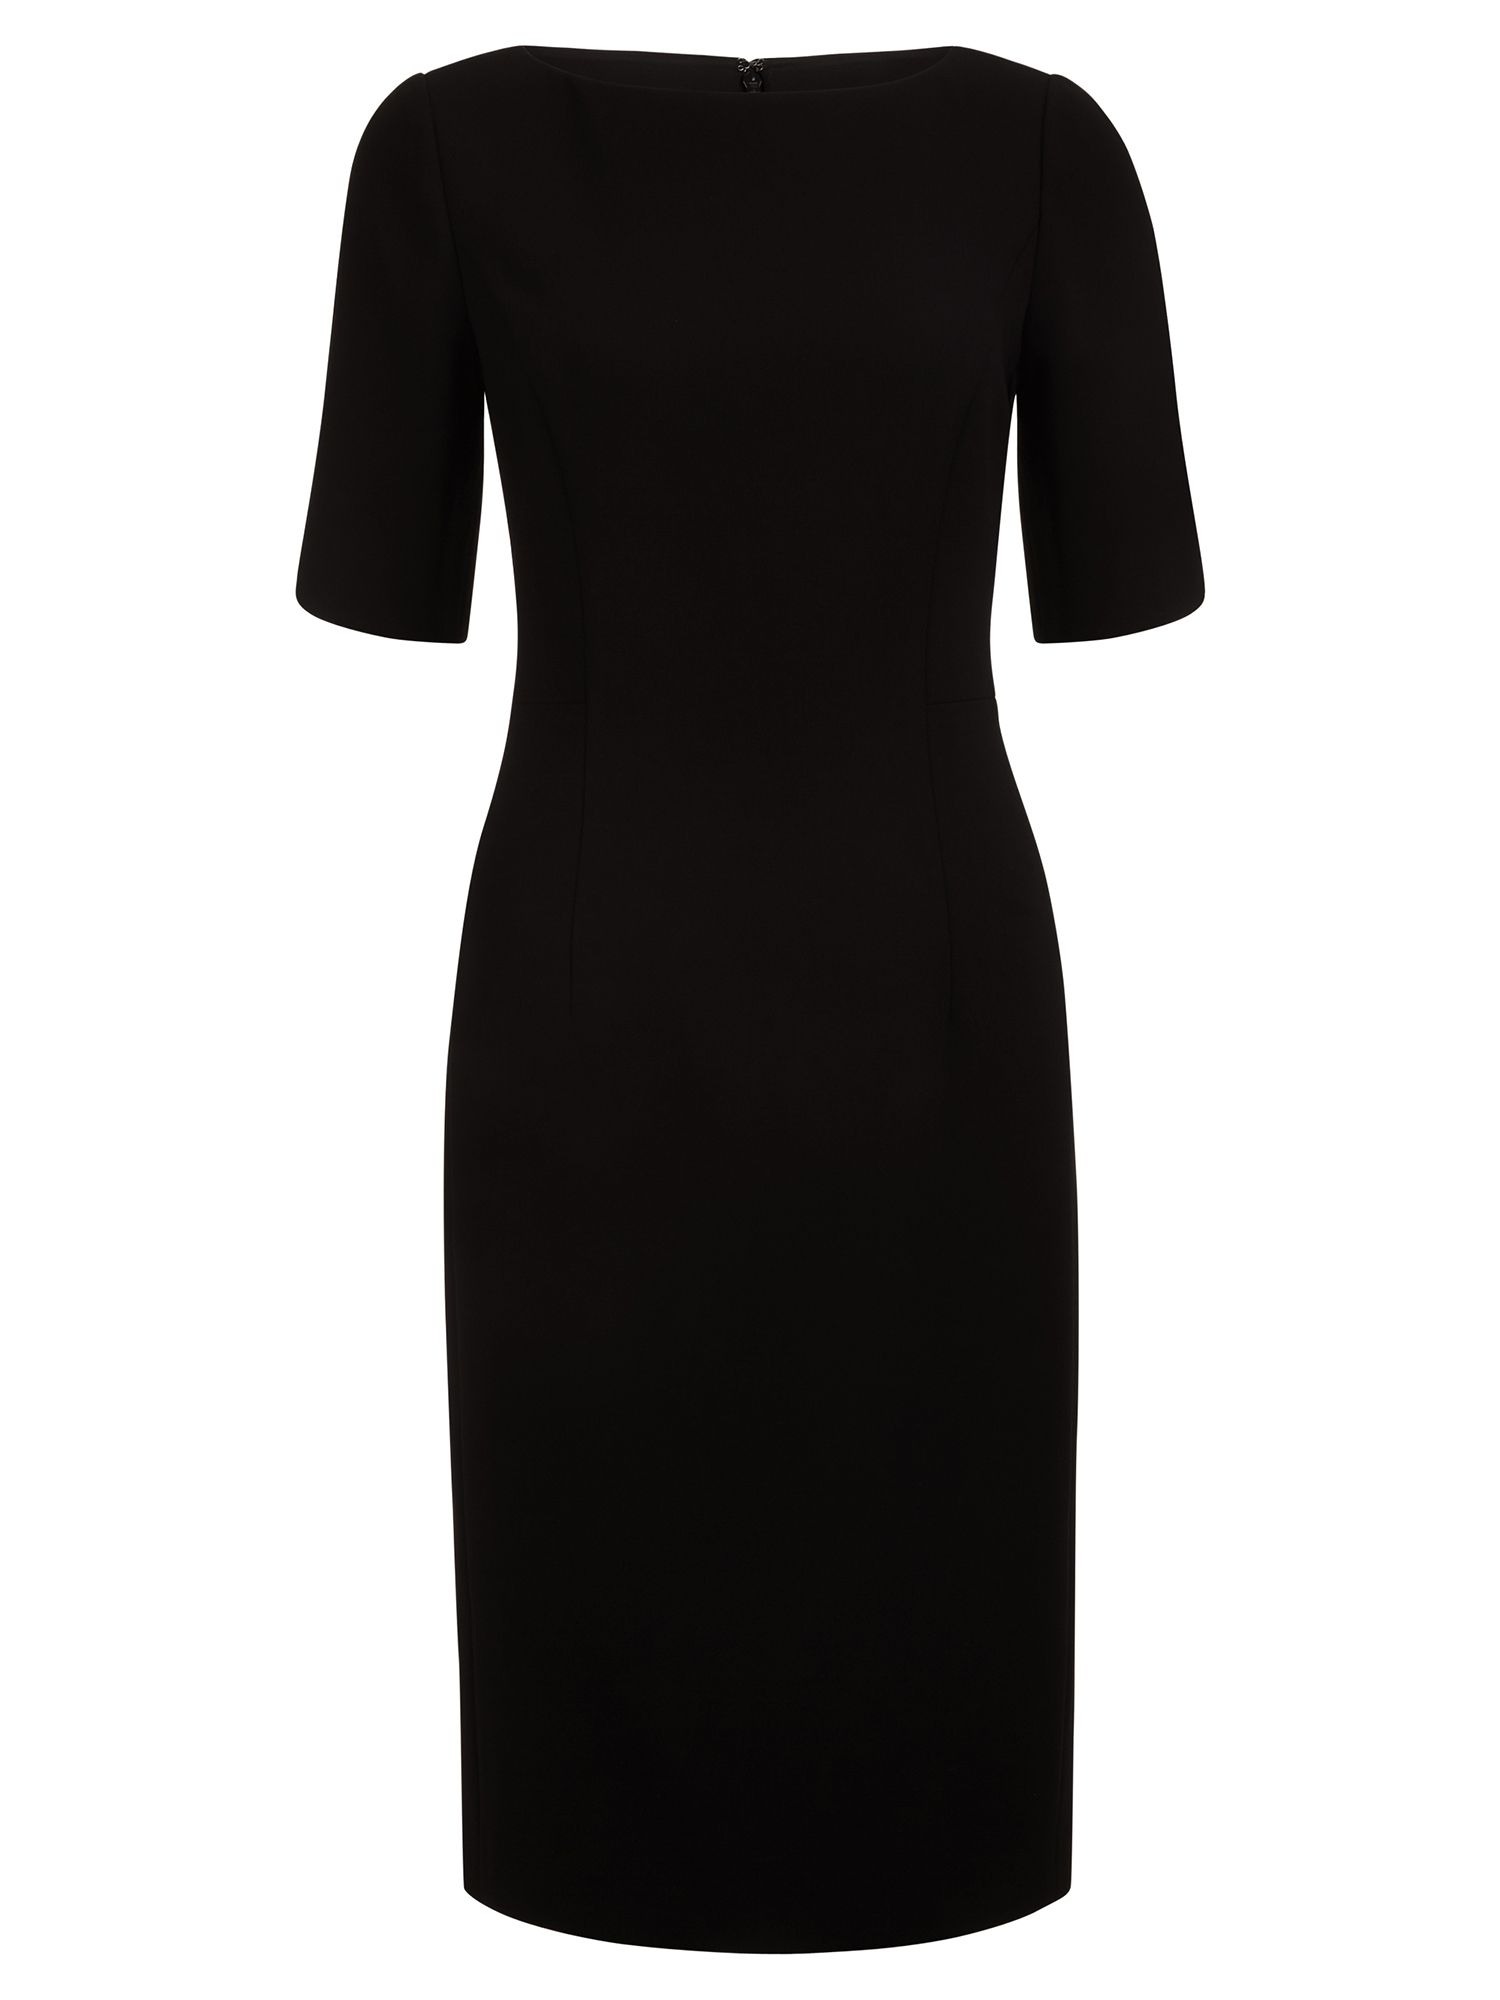 Hobbs Caitlyn Dress, Black